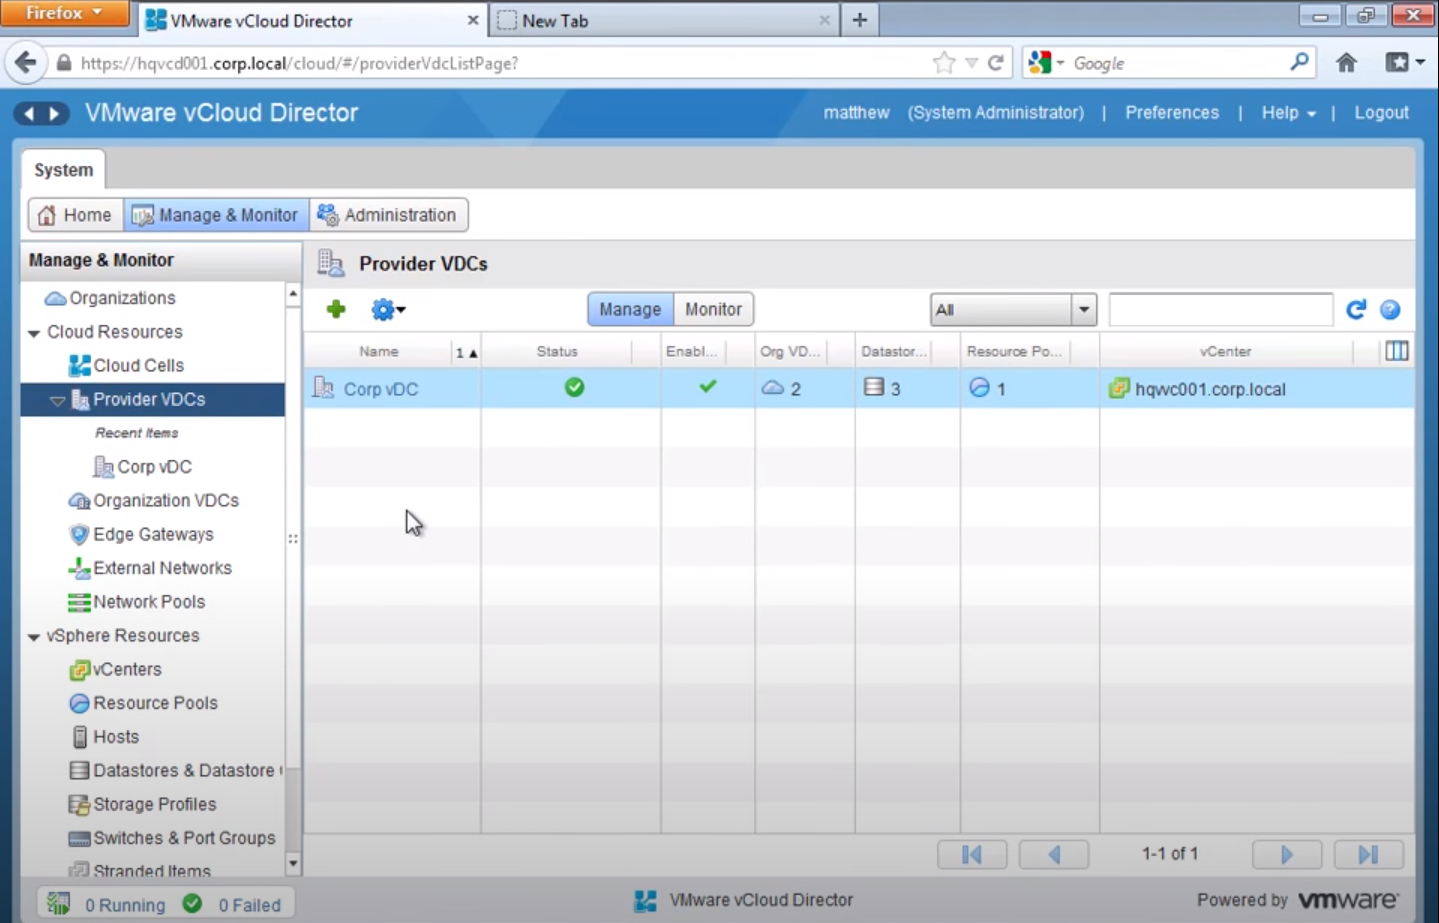 VMware vCloud director manager & monitor